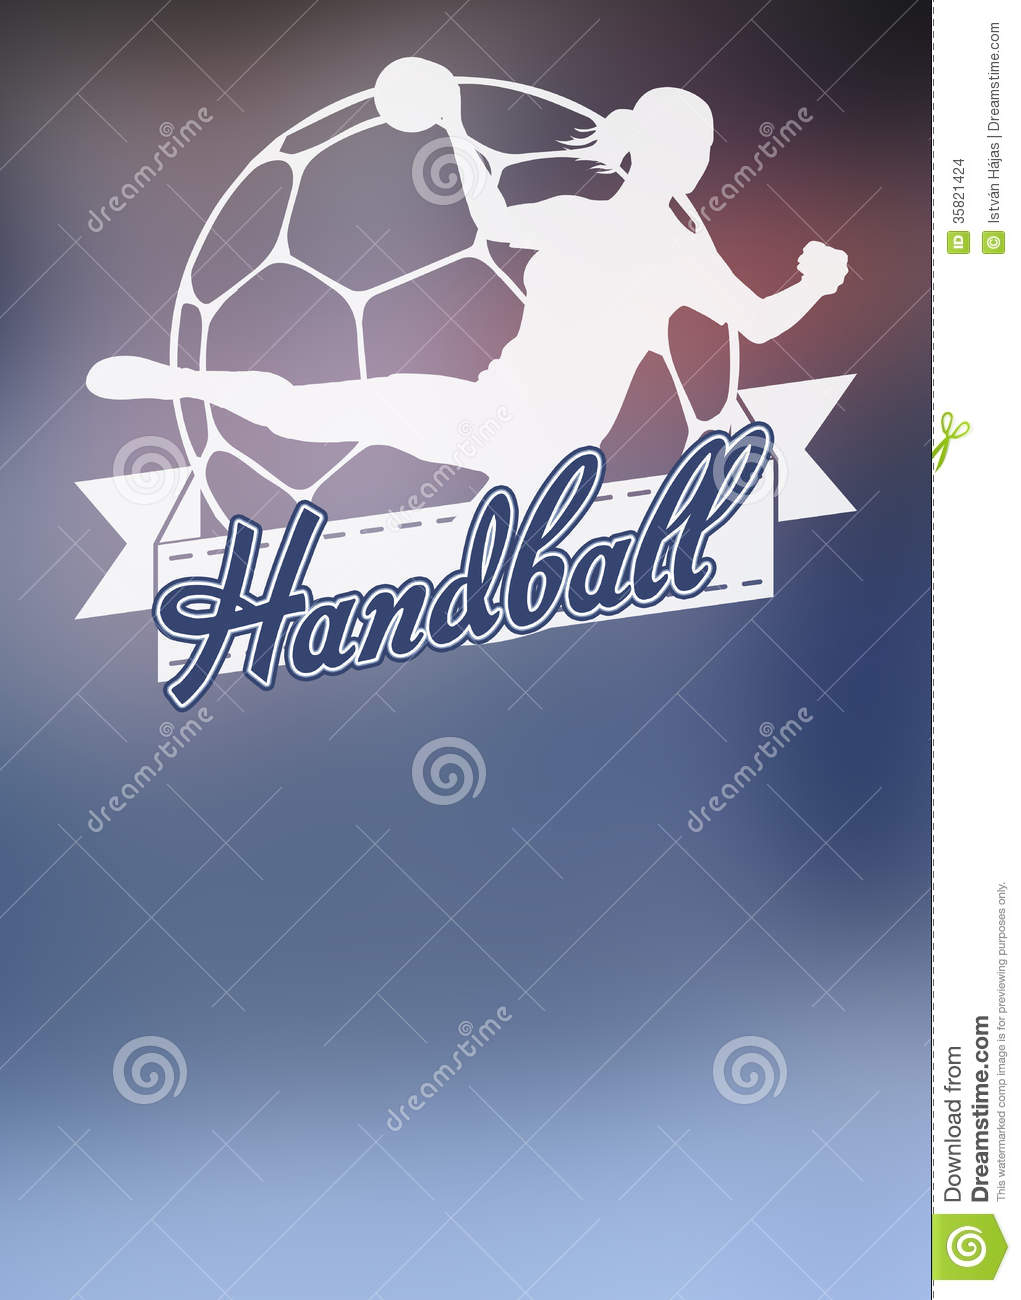 Handball Grill Background Stock Images - Image: 35821424